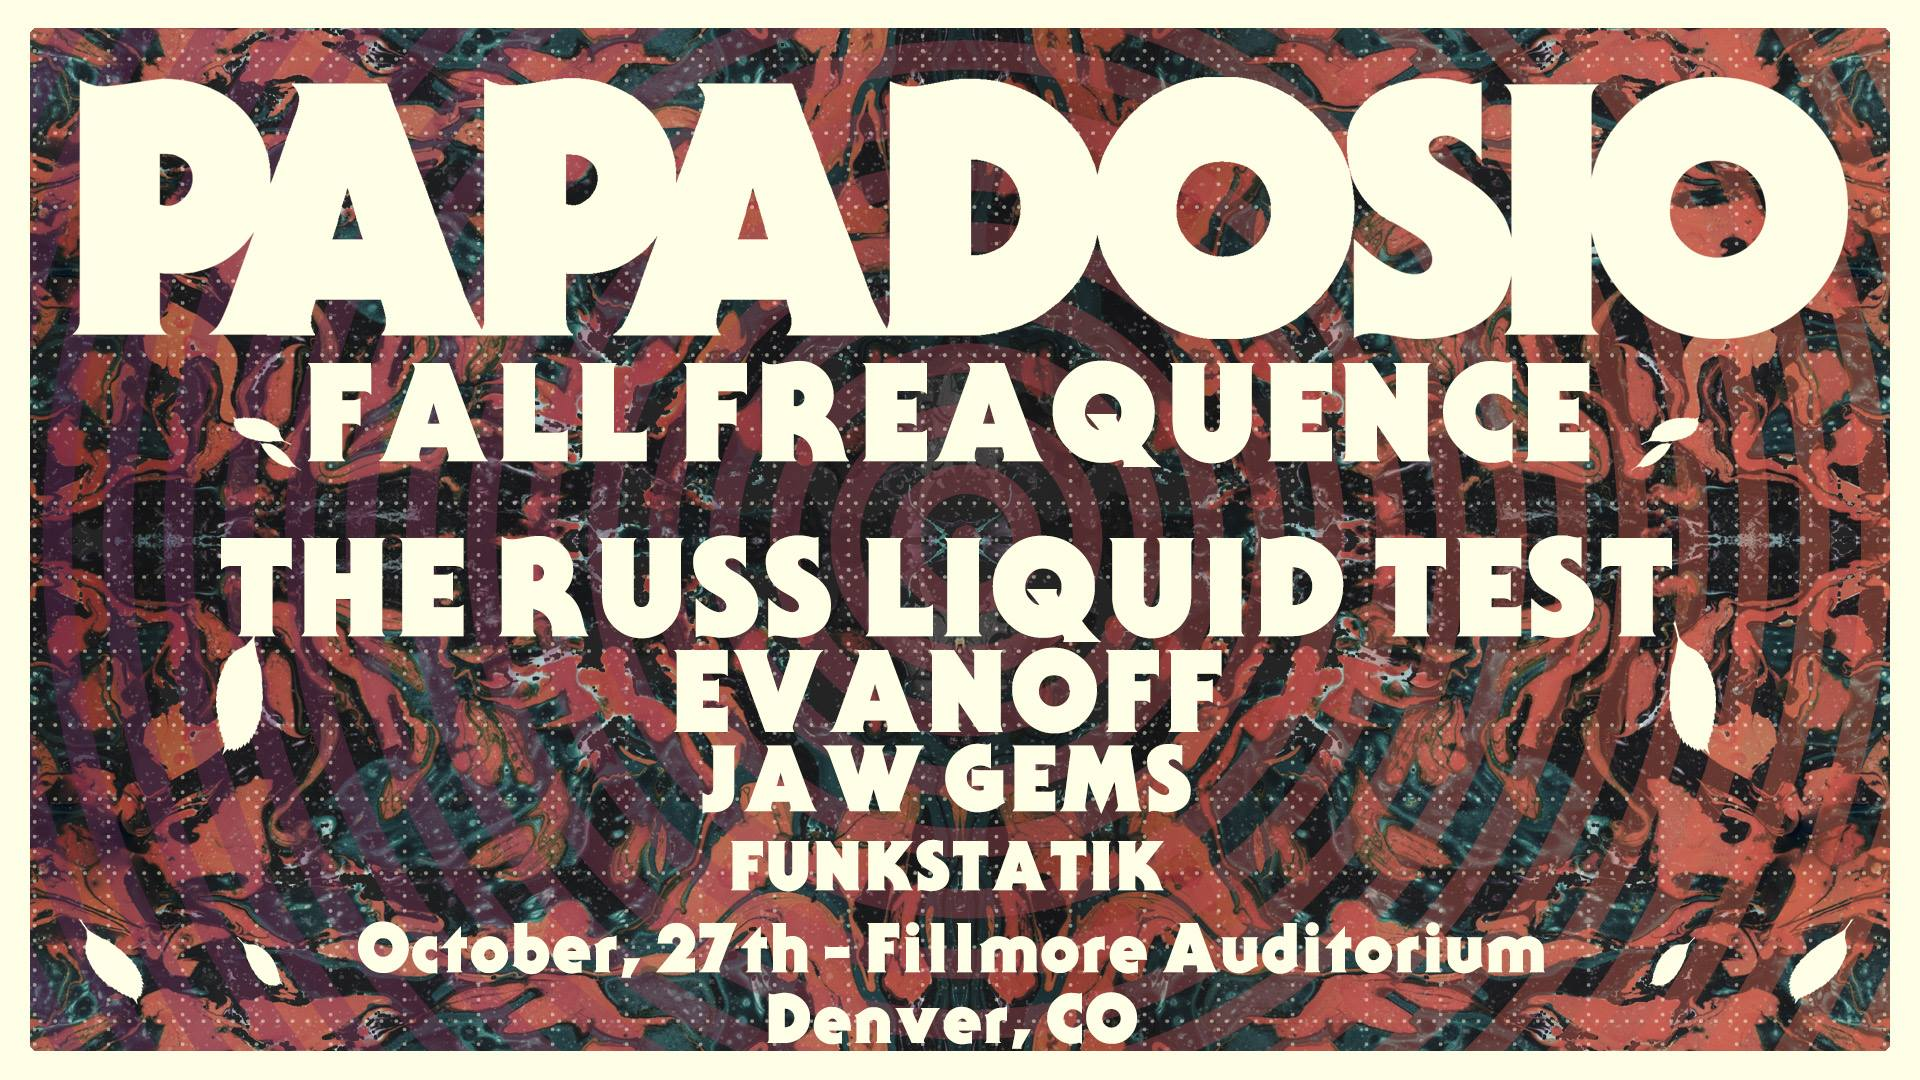 Papadosio's 'Fall Freaquence' – Concert Preview